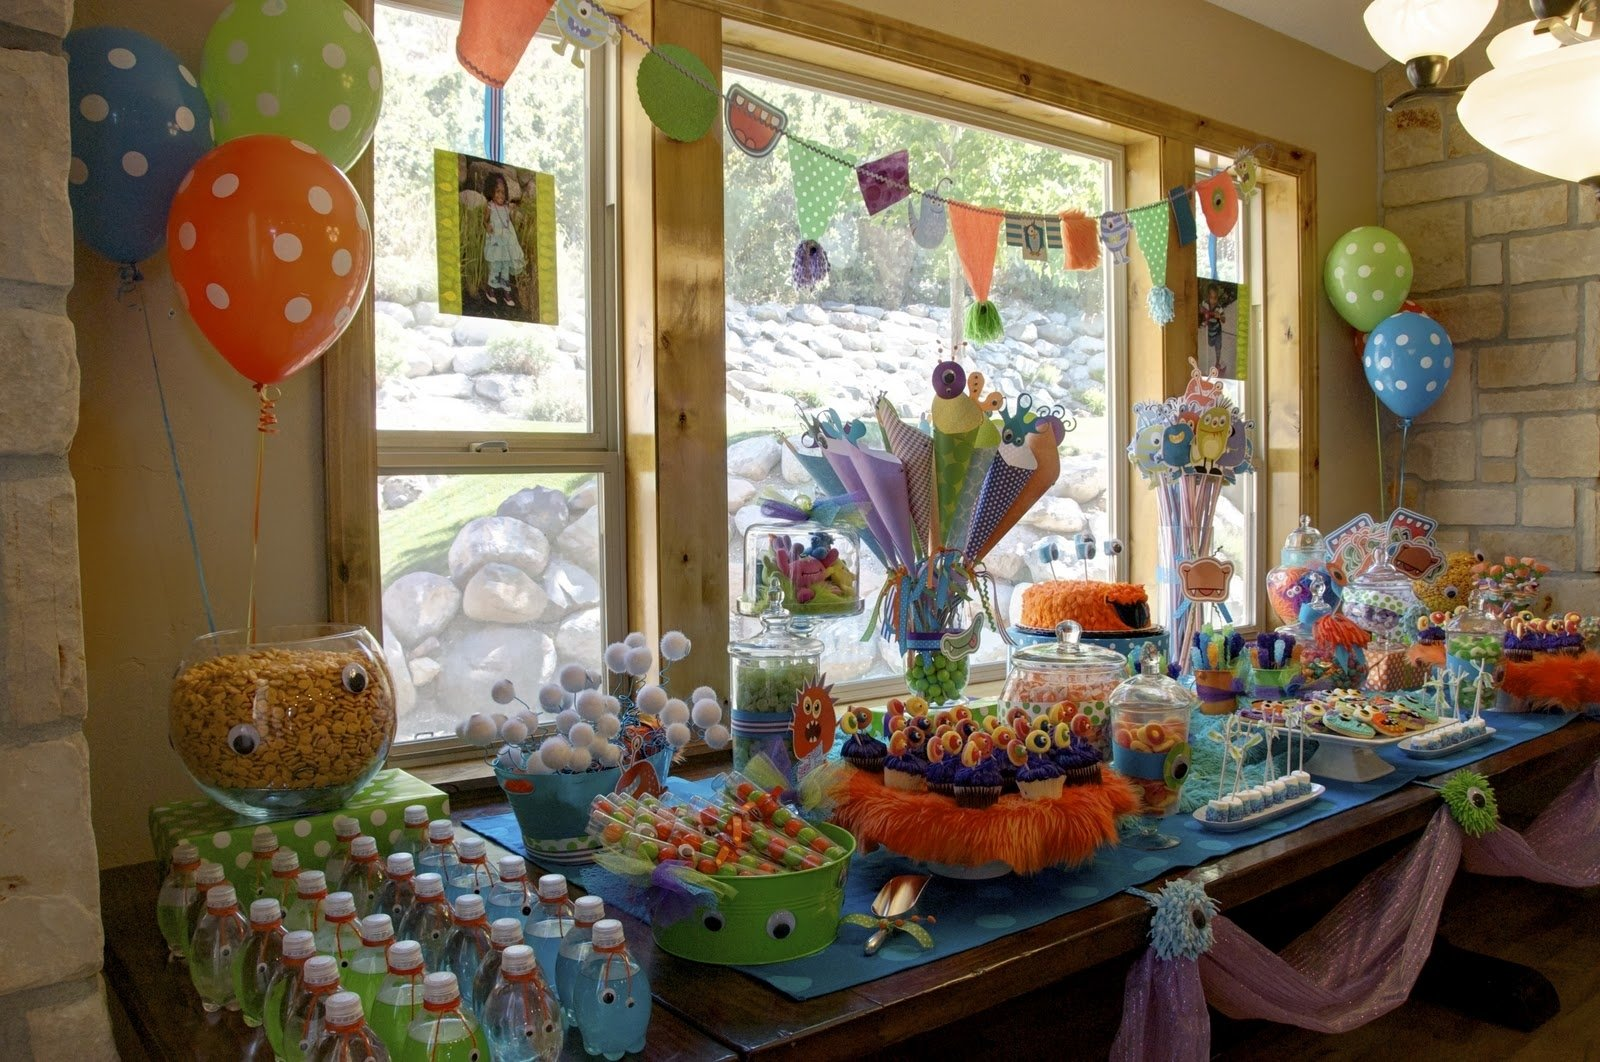 10 Best 7 Year Old Birthday Party Ideas 3 year old birthday party ideas nisartmacka 10 2020